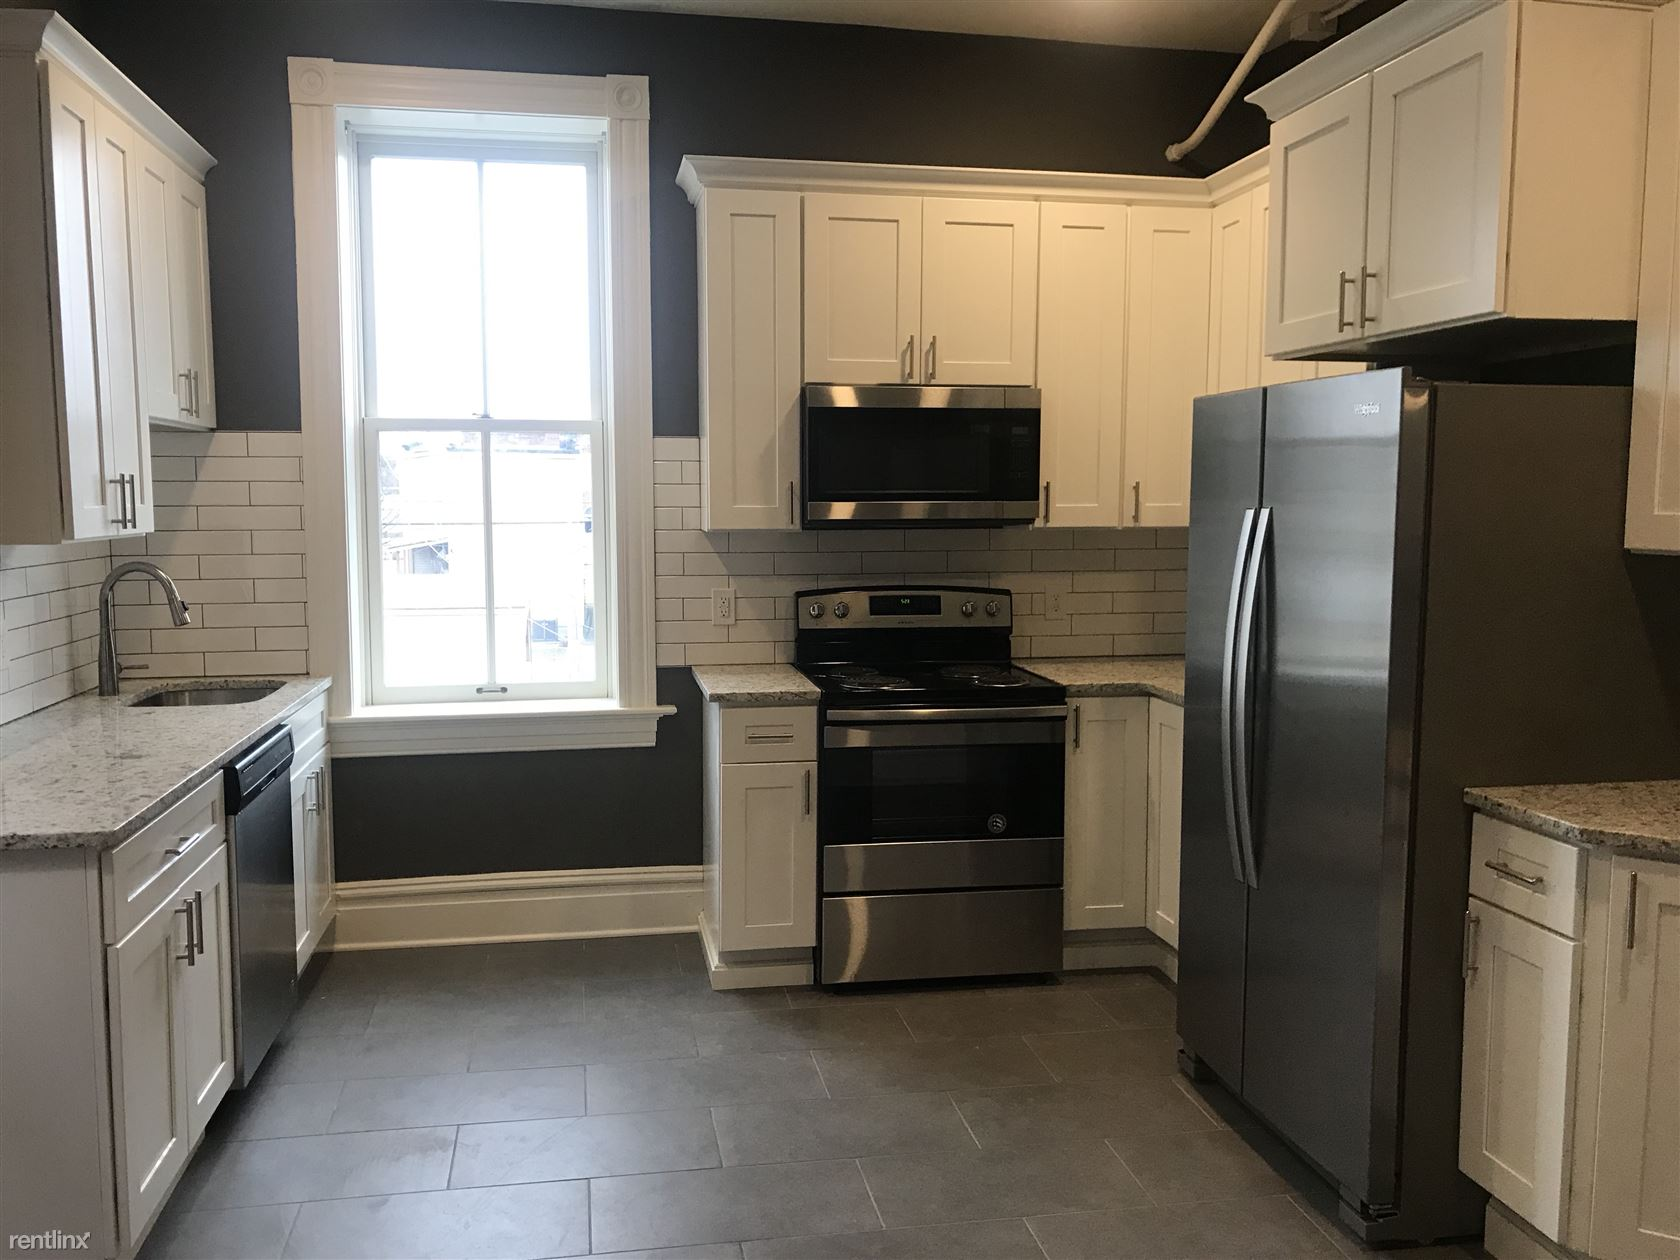 Apartment for Rent in Saint Louis